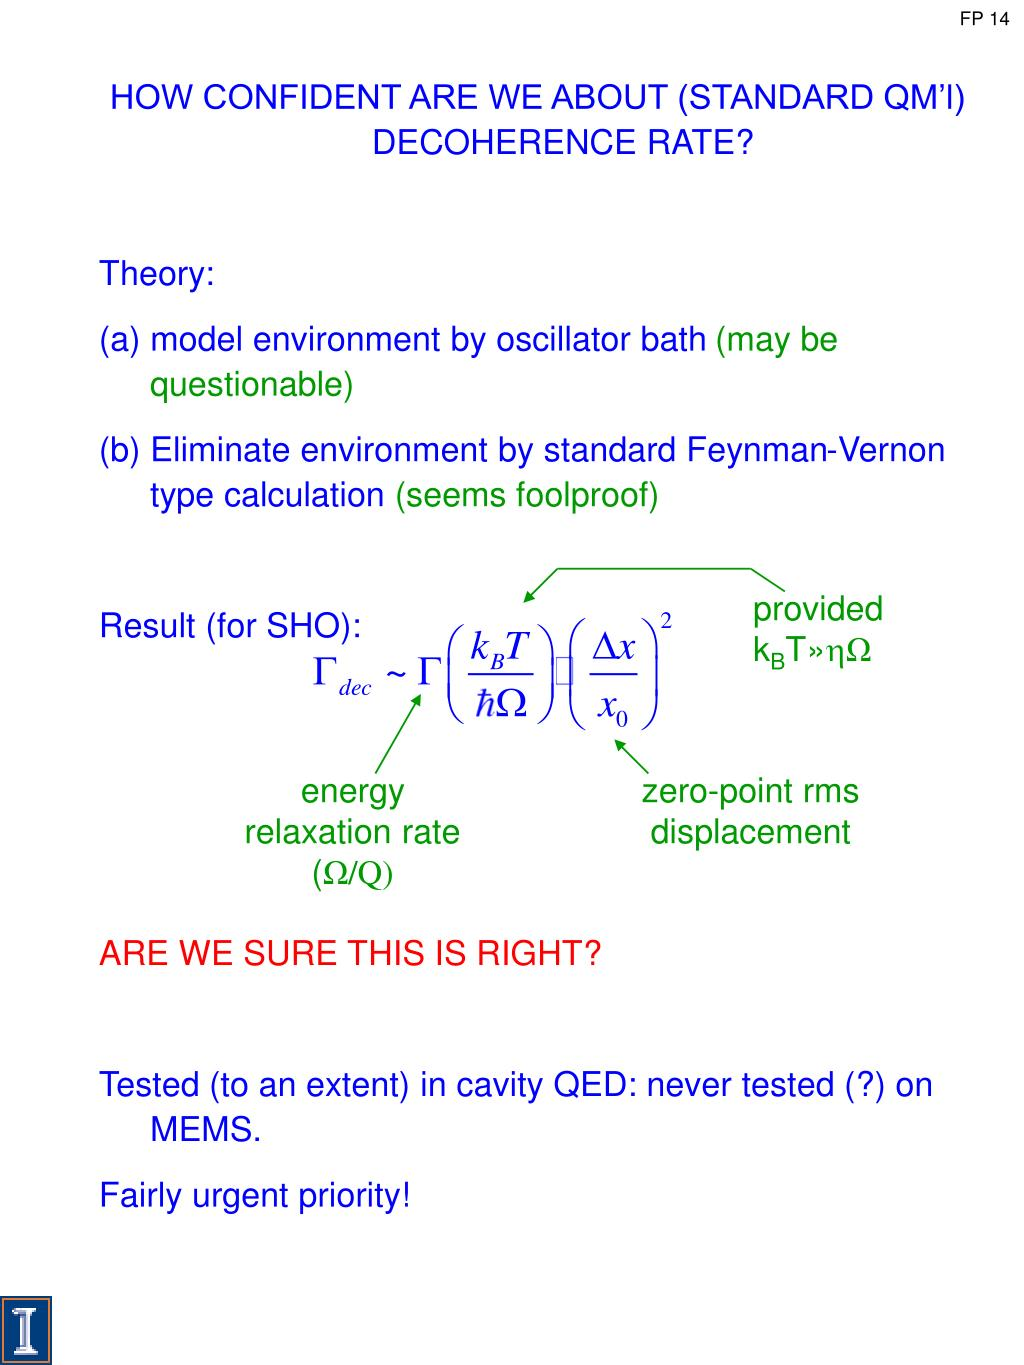 HOW CONFIDENT ARE WE ABOUT (STANDARD QM'l) DECOHERENCE RATE?